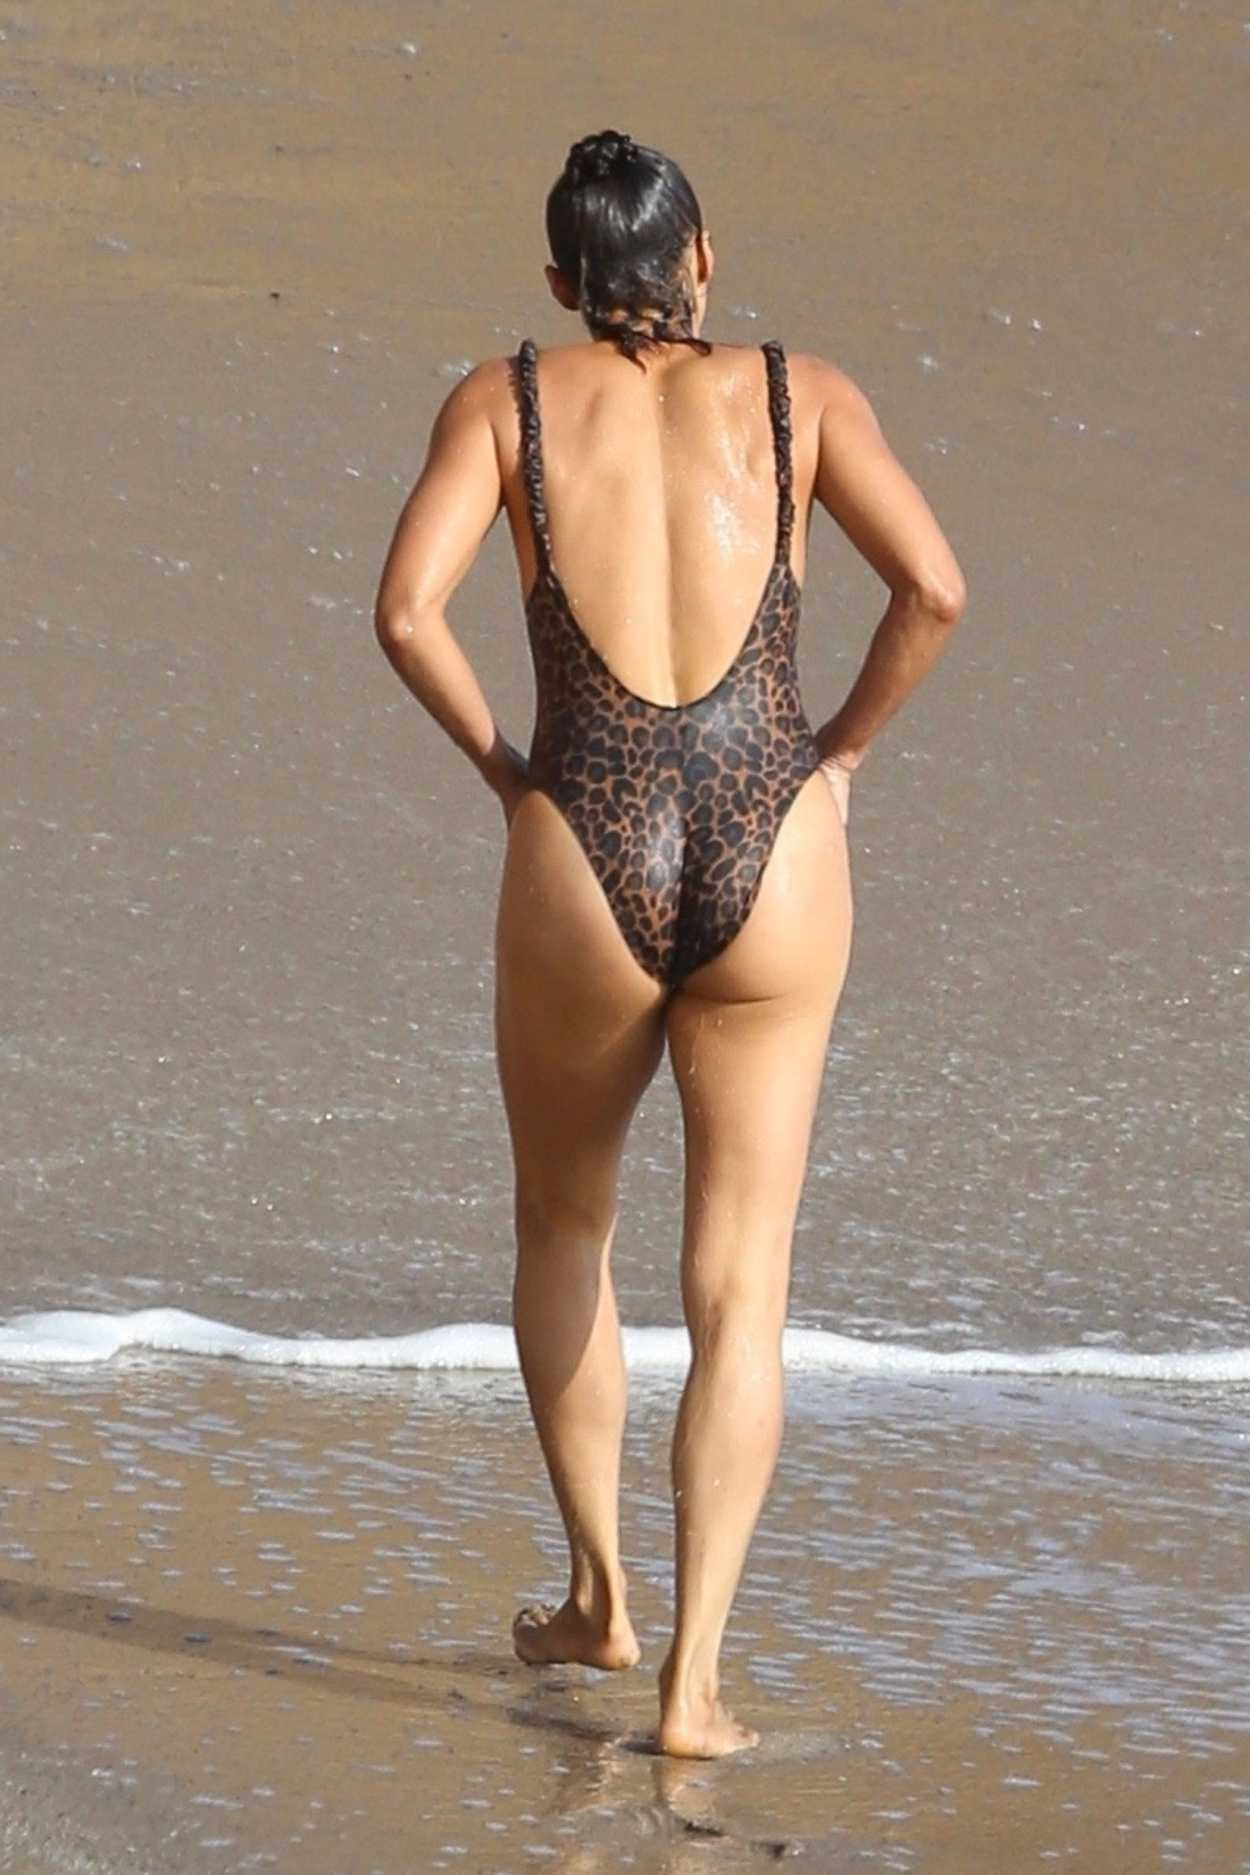 Paula Patton in a Leopard Print Swimsuit on the Beach in